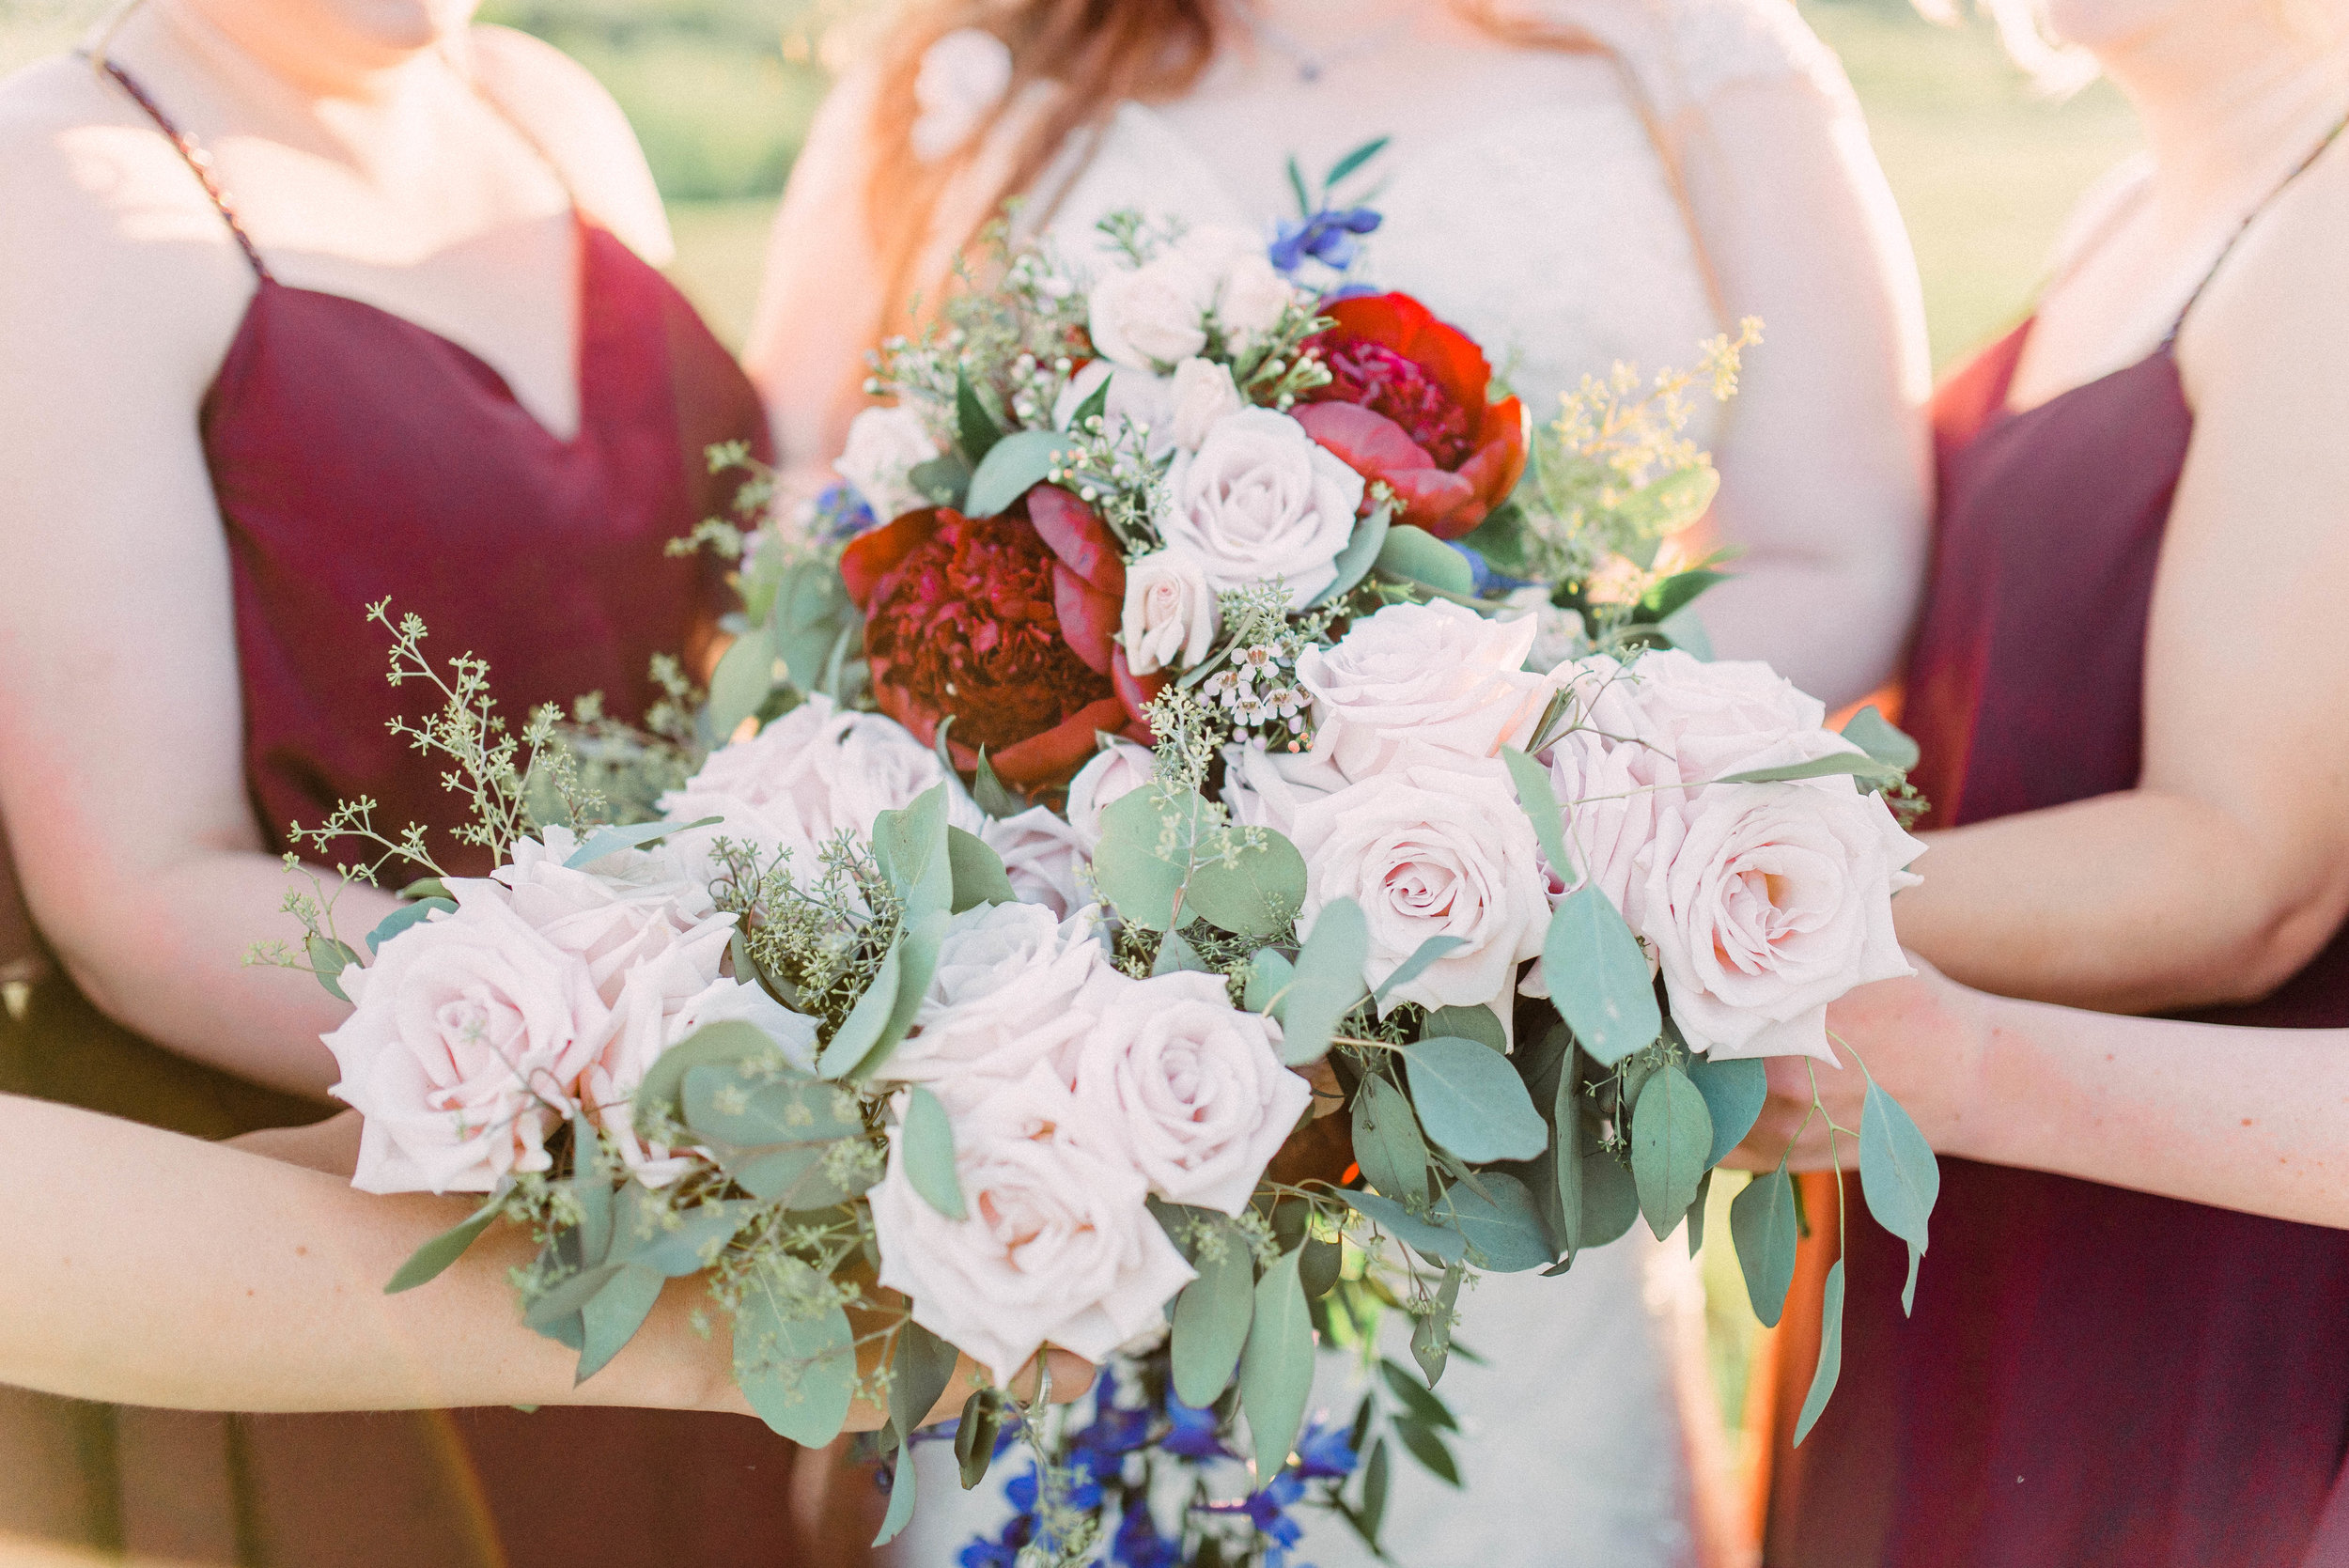 Courtney + Ryan | Romantic Fairytale Winery Wedding | The Sycamore Winery - Terre Haute, IN | Elopement & Destination Wedding Photographers